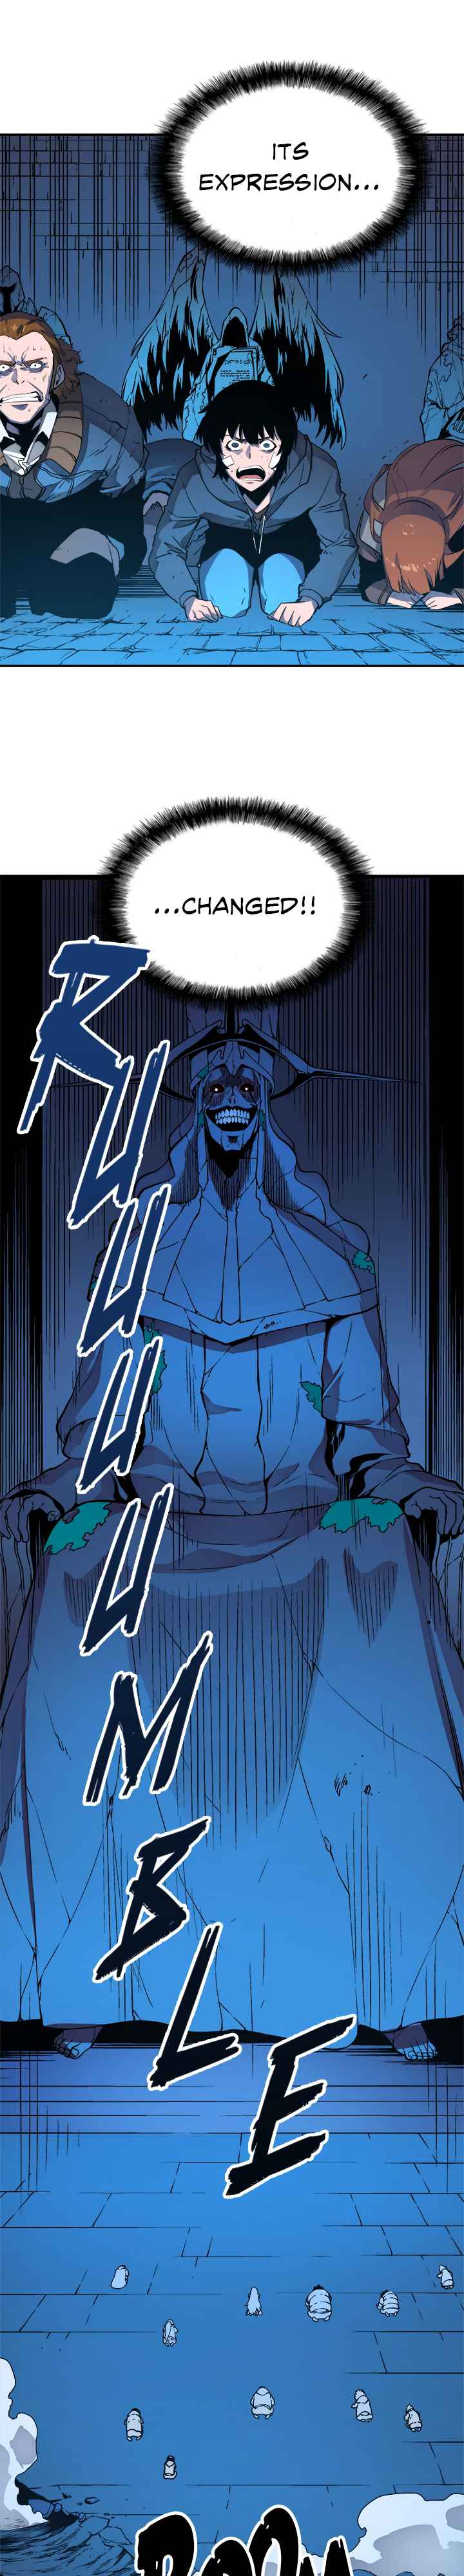 Solo Leveling Chapter 6 Page 13